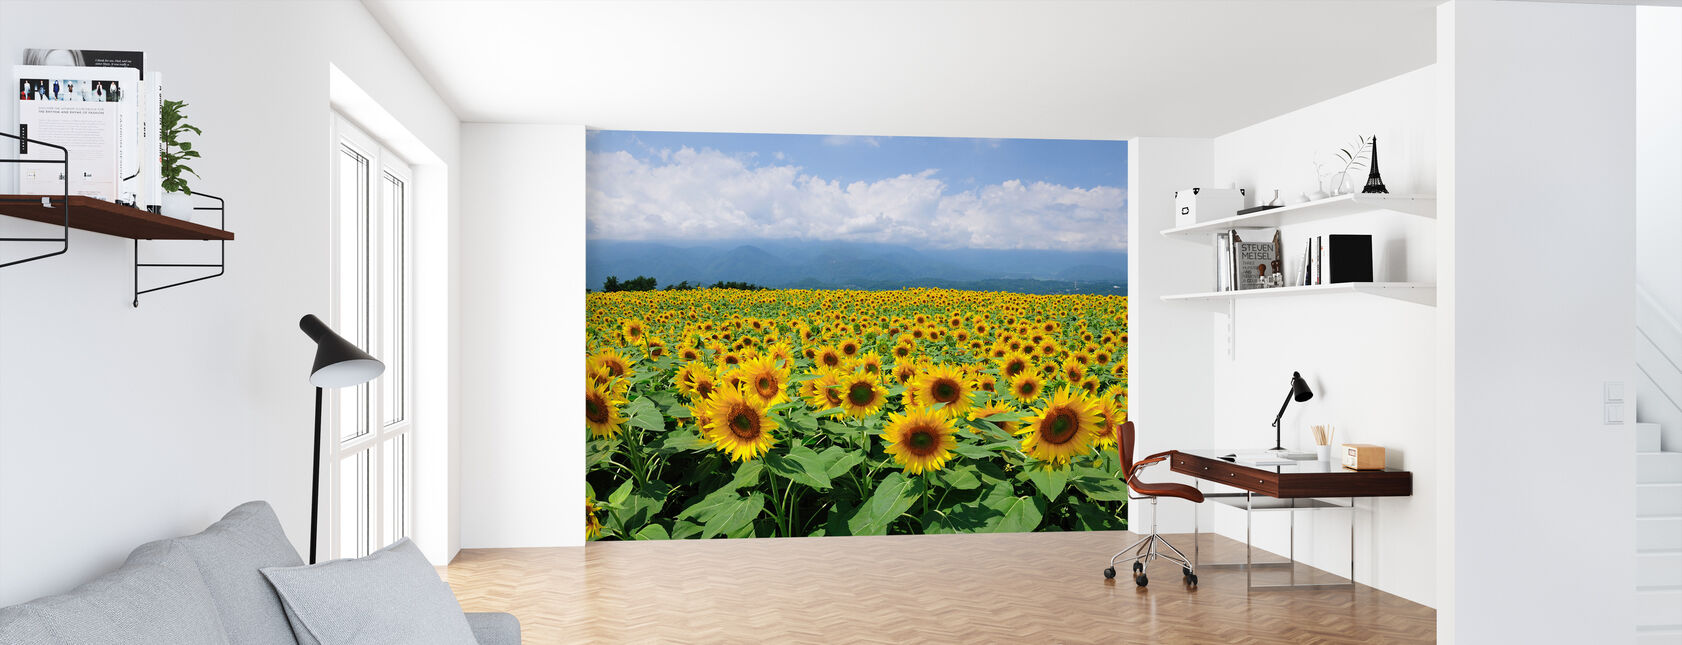 Sunflowers in Sunny Weather - Wallpaper - Office